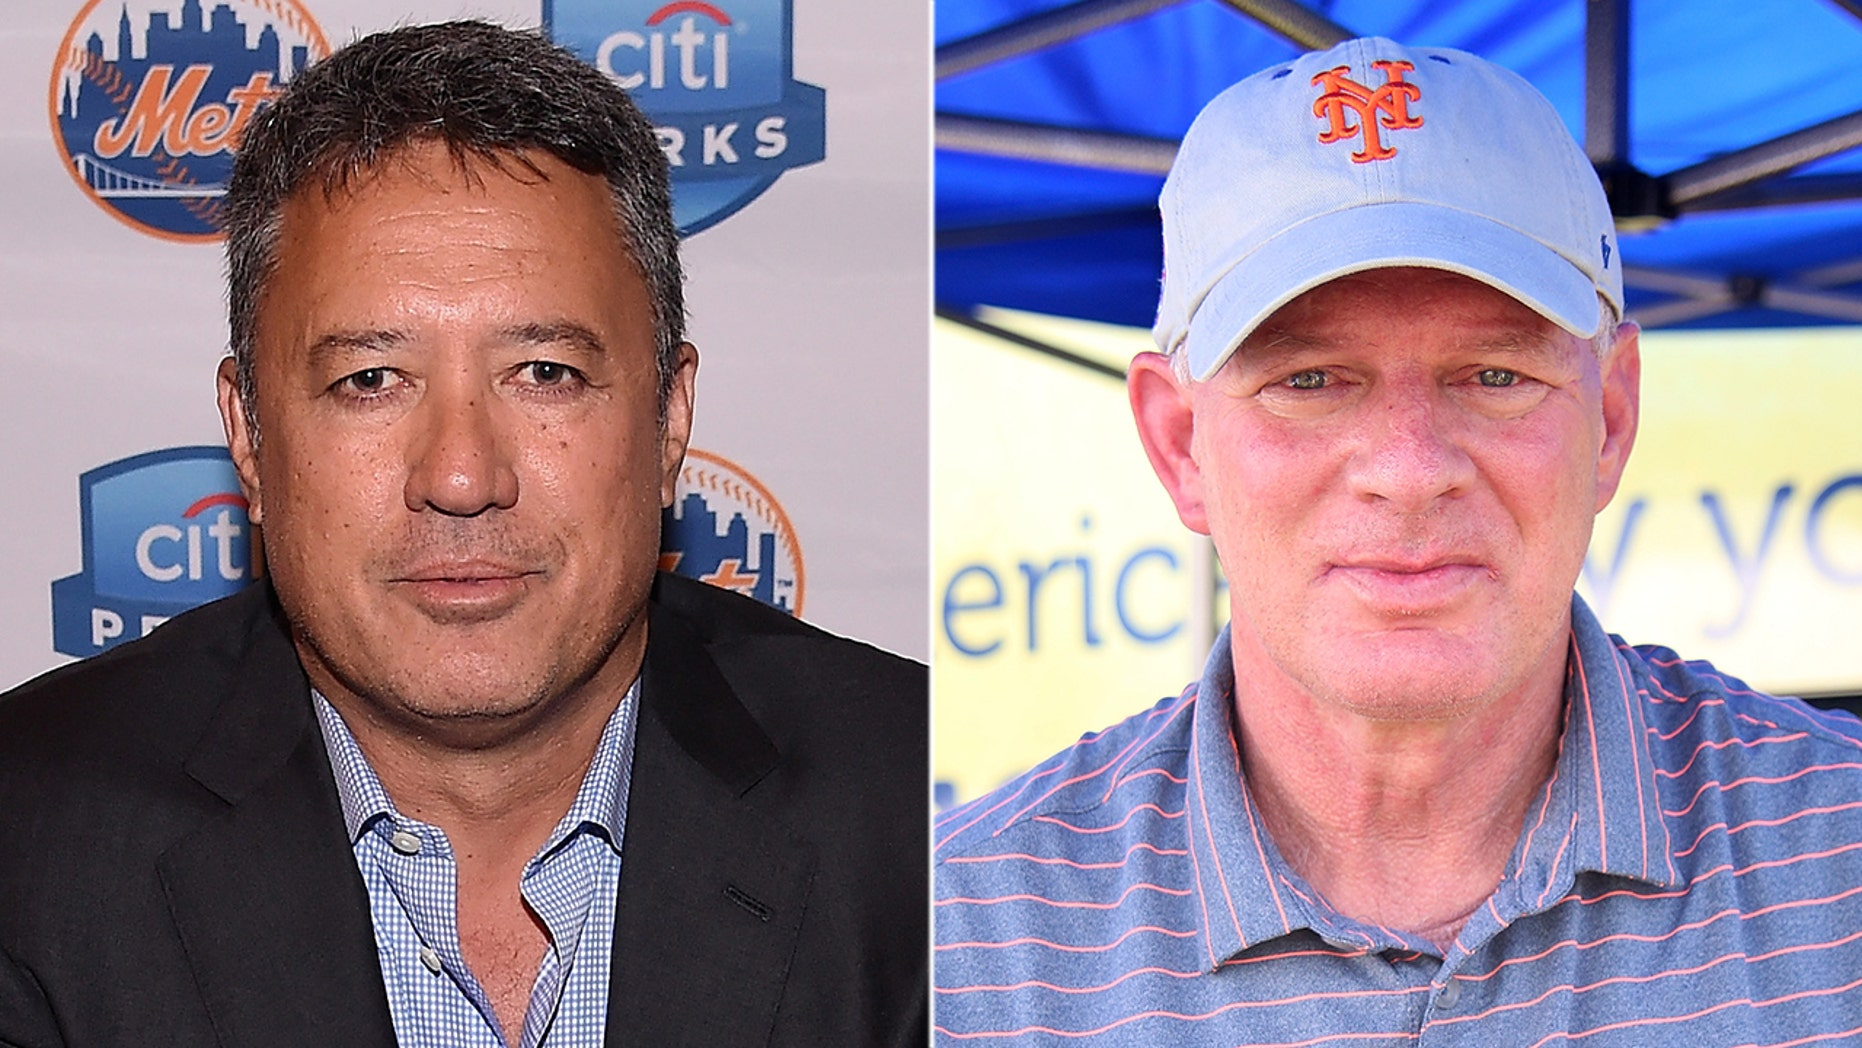 Claims in a new book have apparently left former New York Mets teammates Ron Darling, left, and Lenny Dykstra at odds.